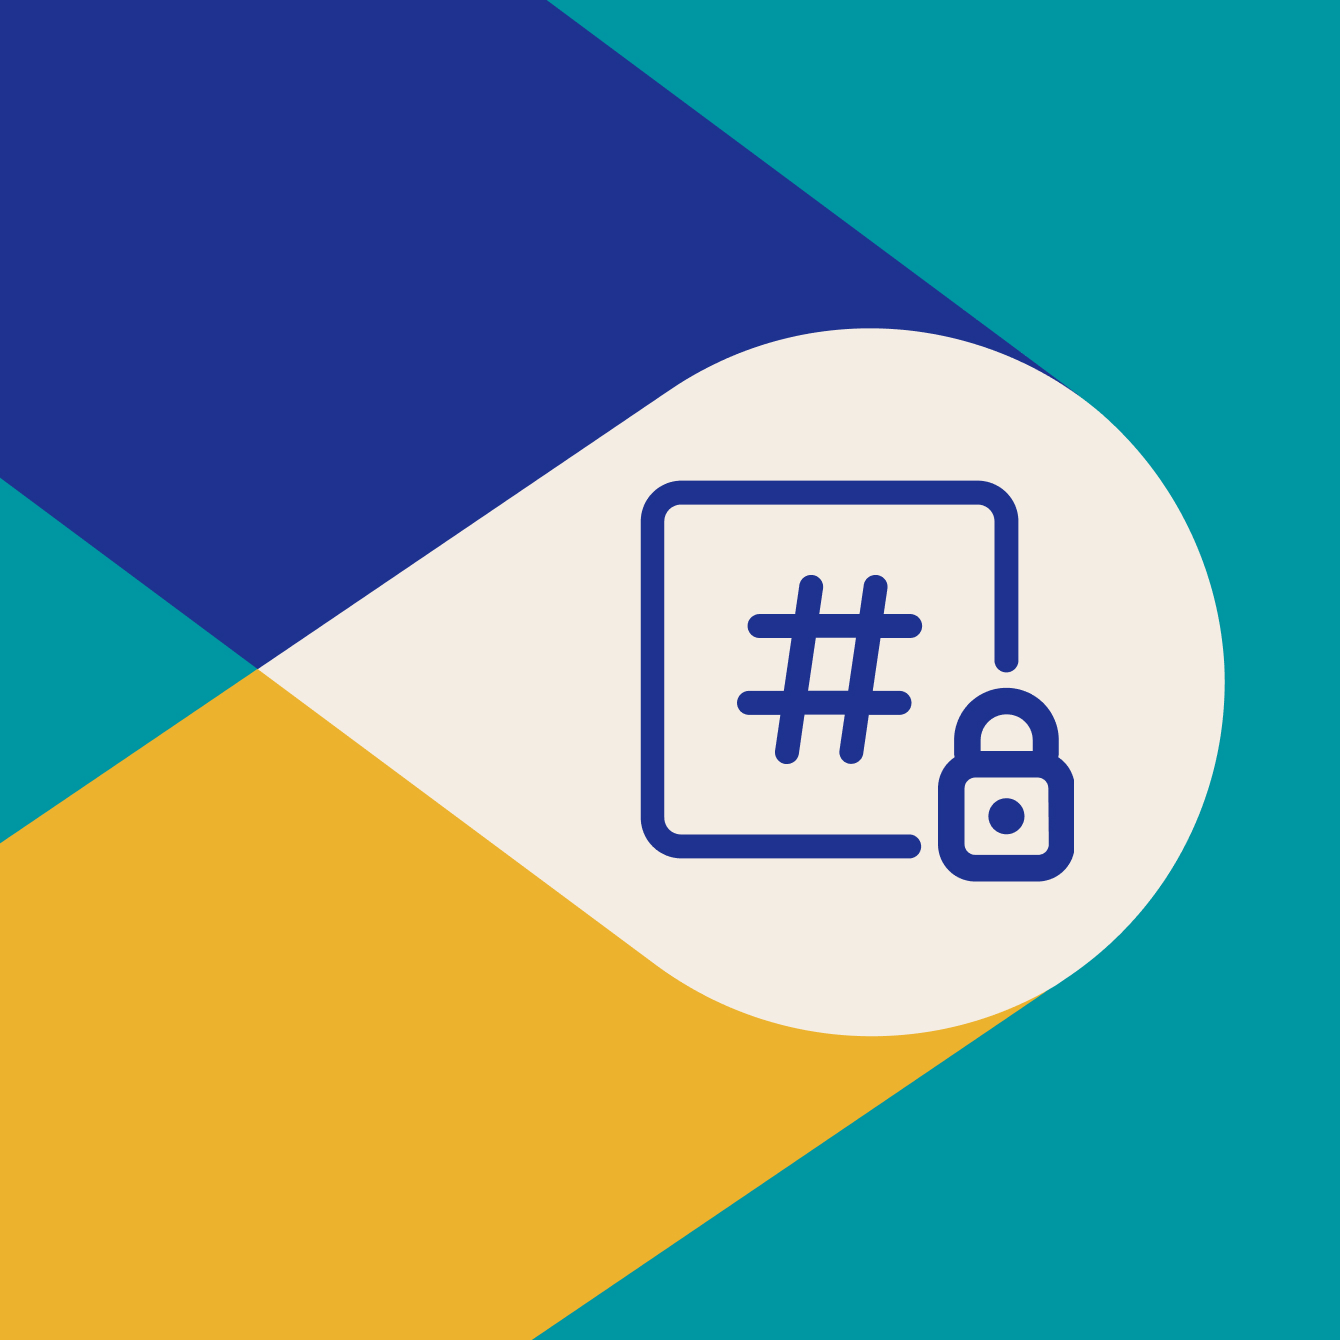 Shared channels and security icon, hashtag with lock